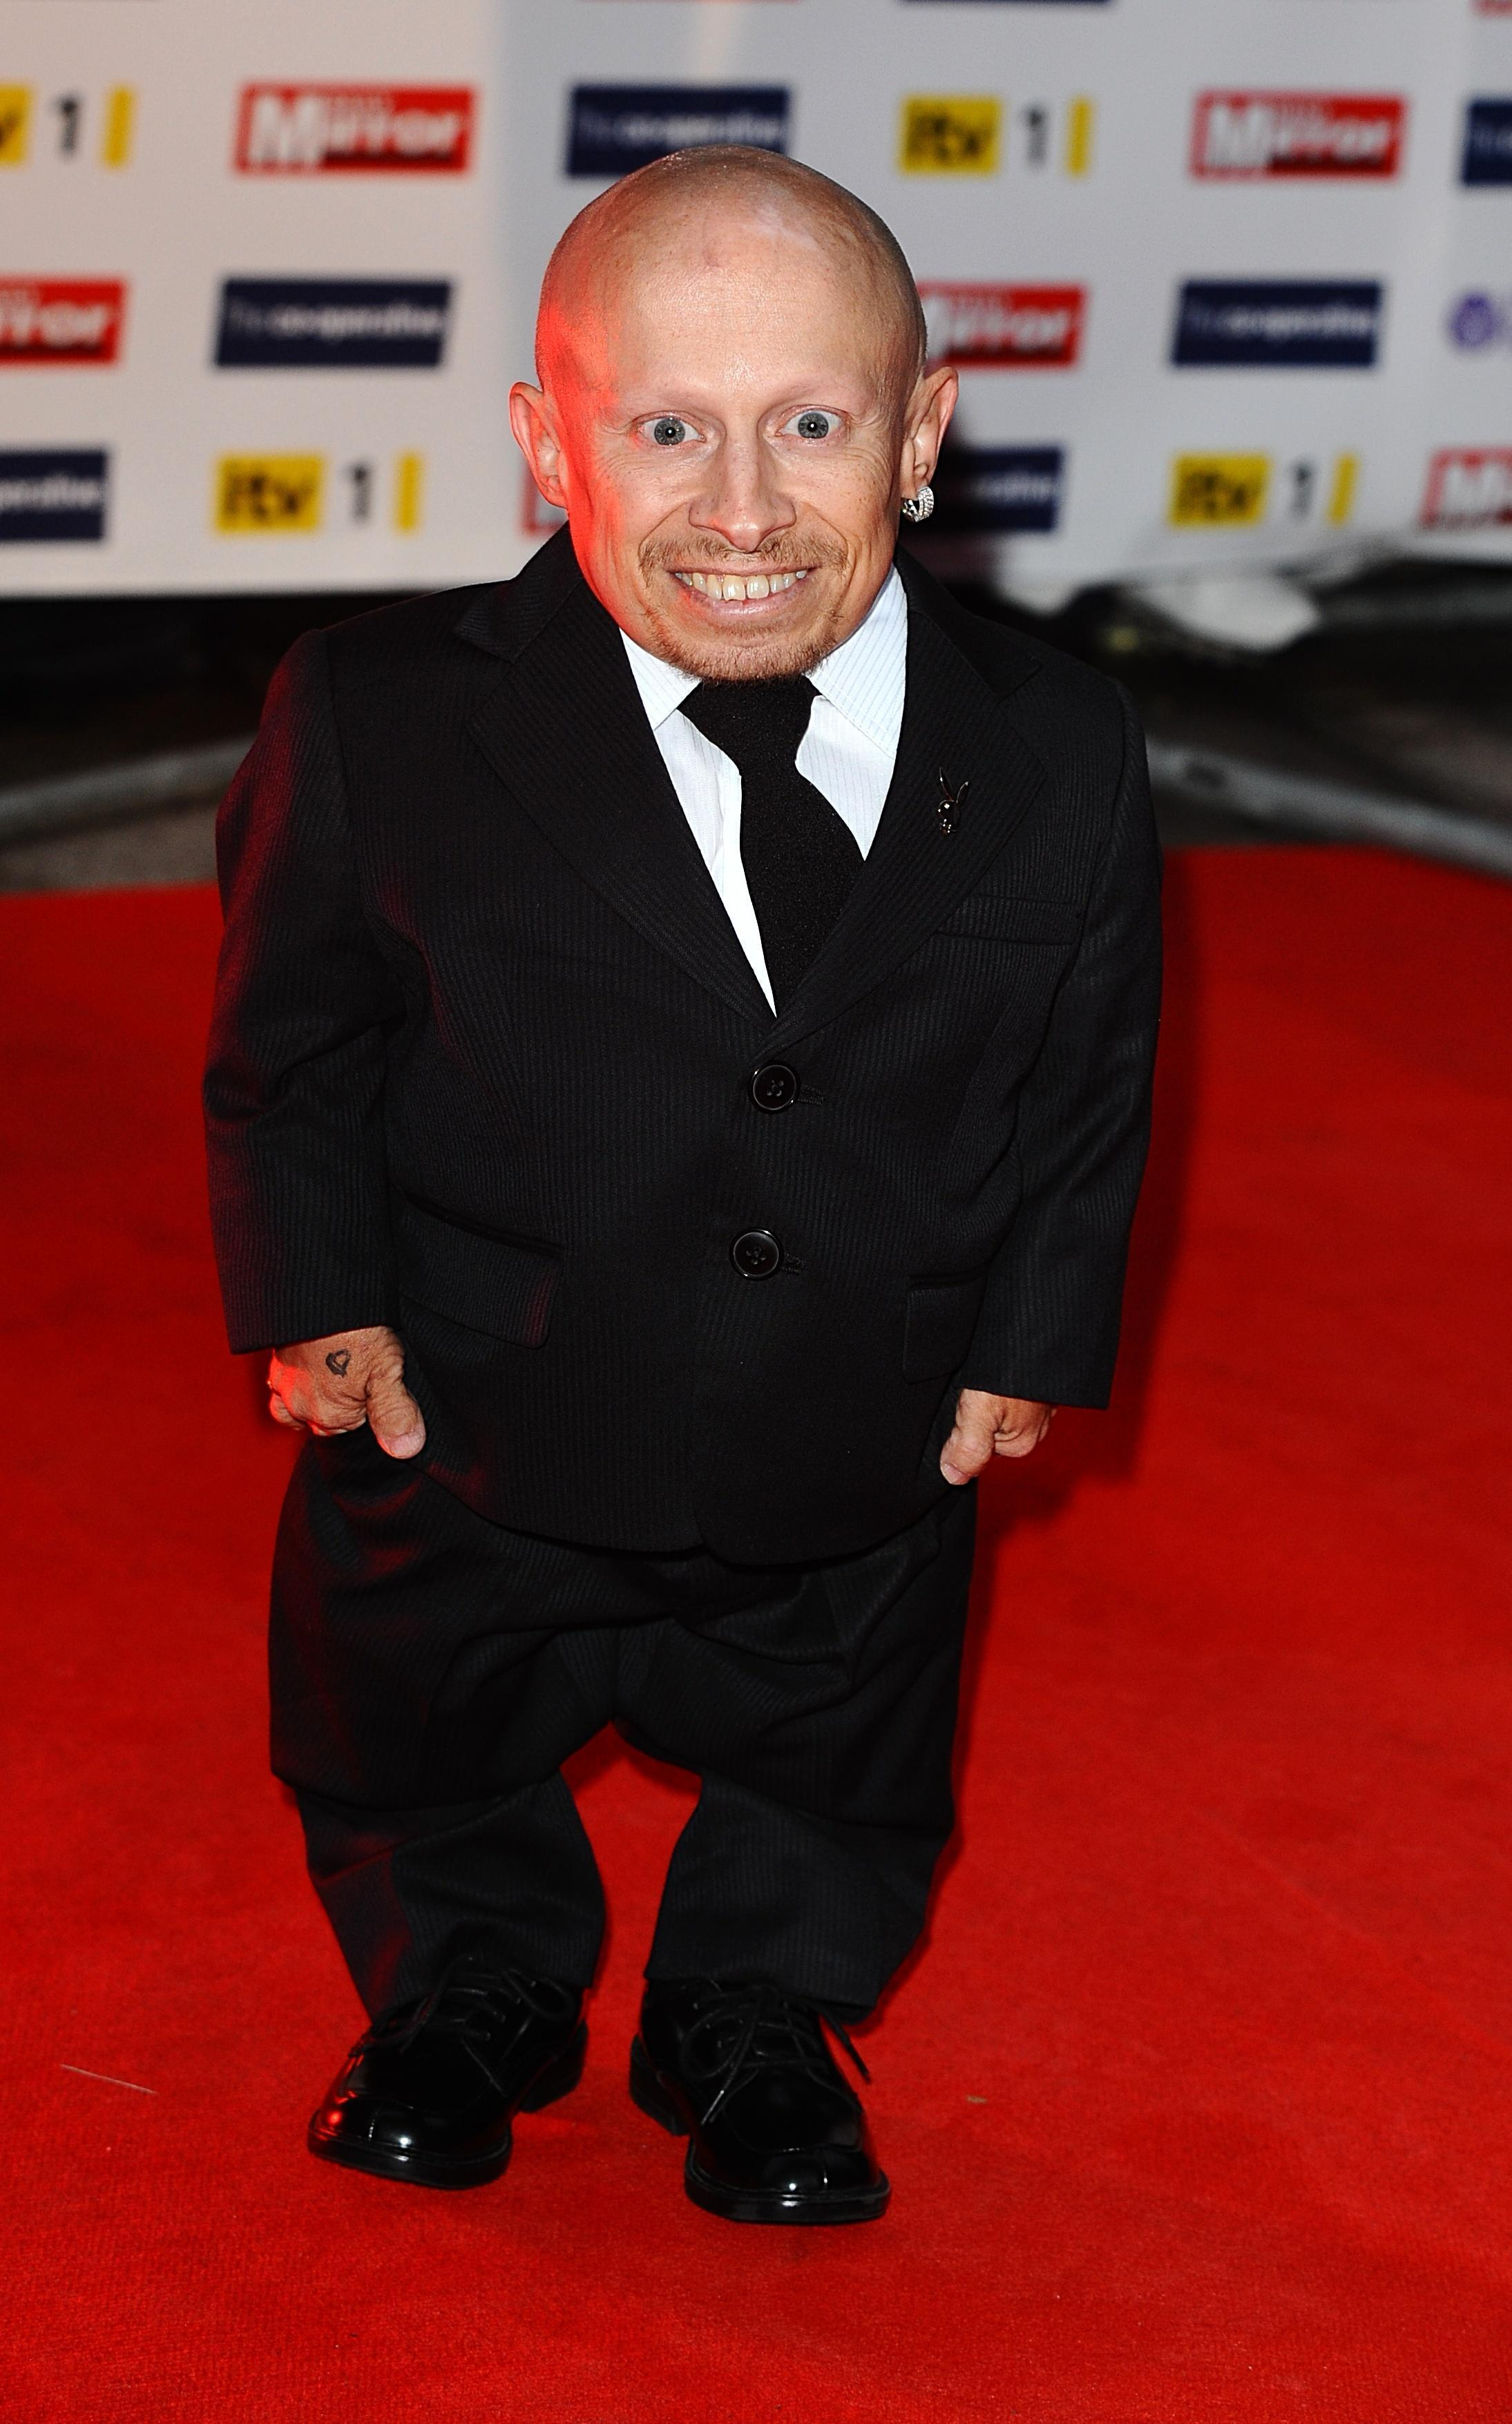 Austin Powers star Verne Troyer was rushed to hospital with alcohol poisoning and suicidal thoughts just weeks before his death